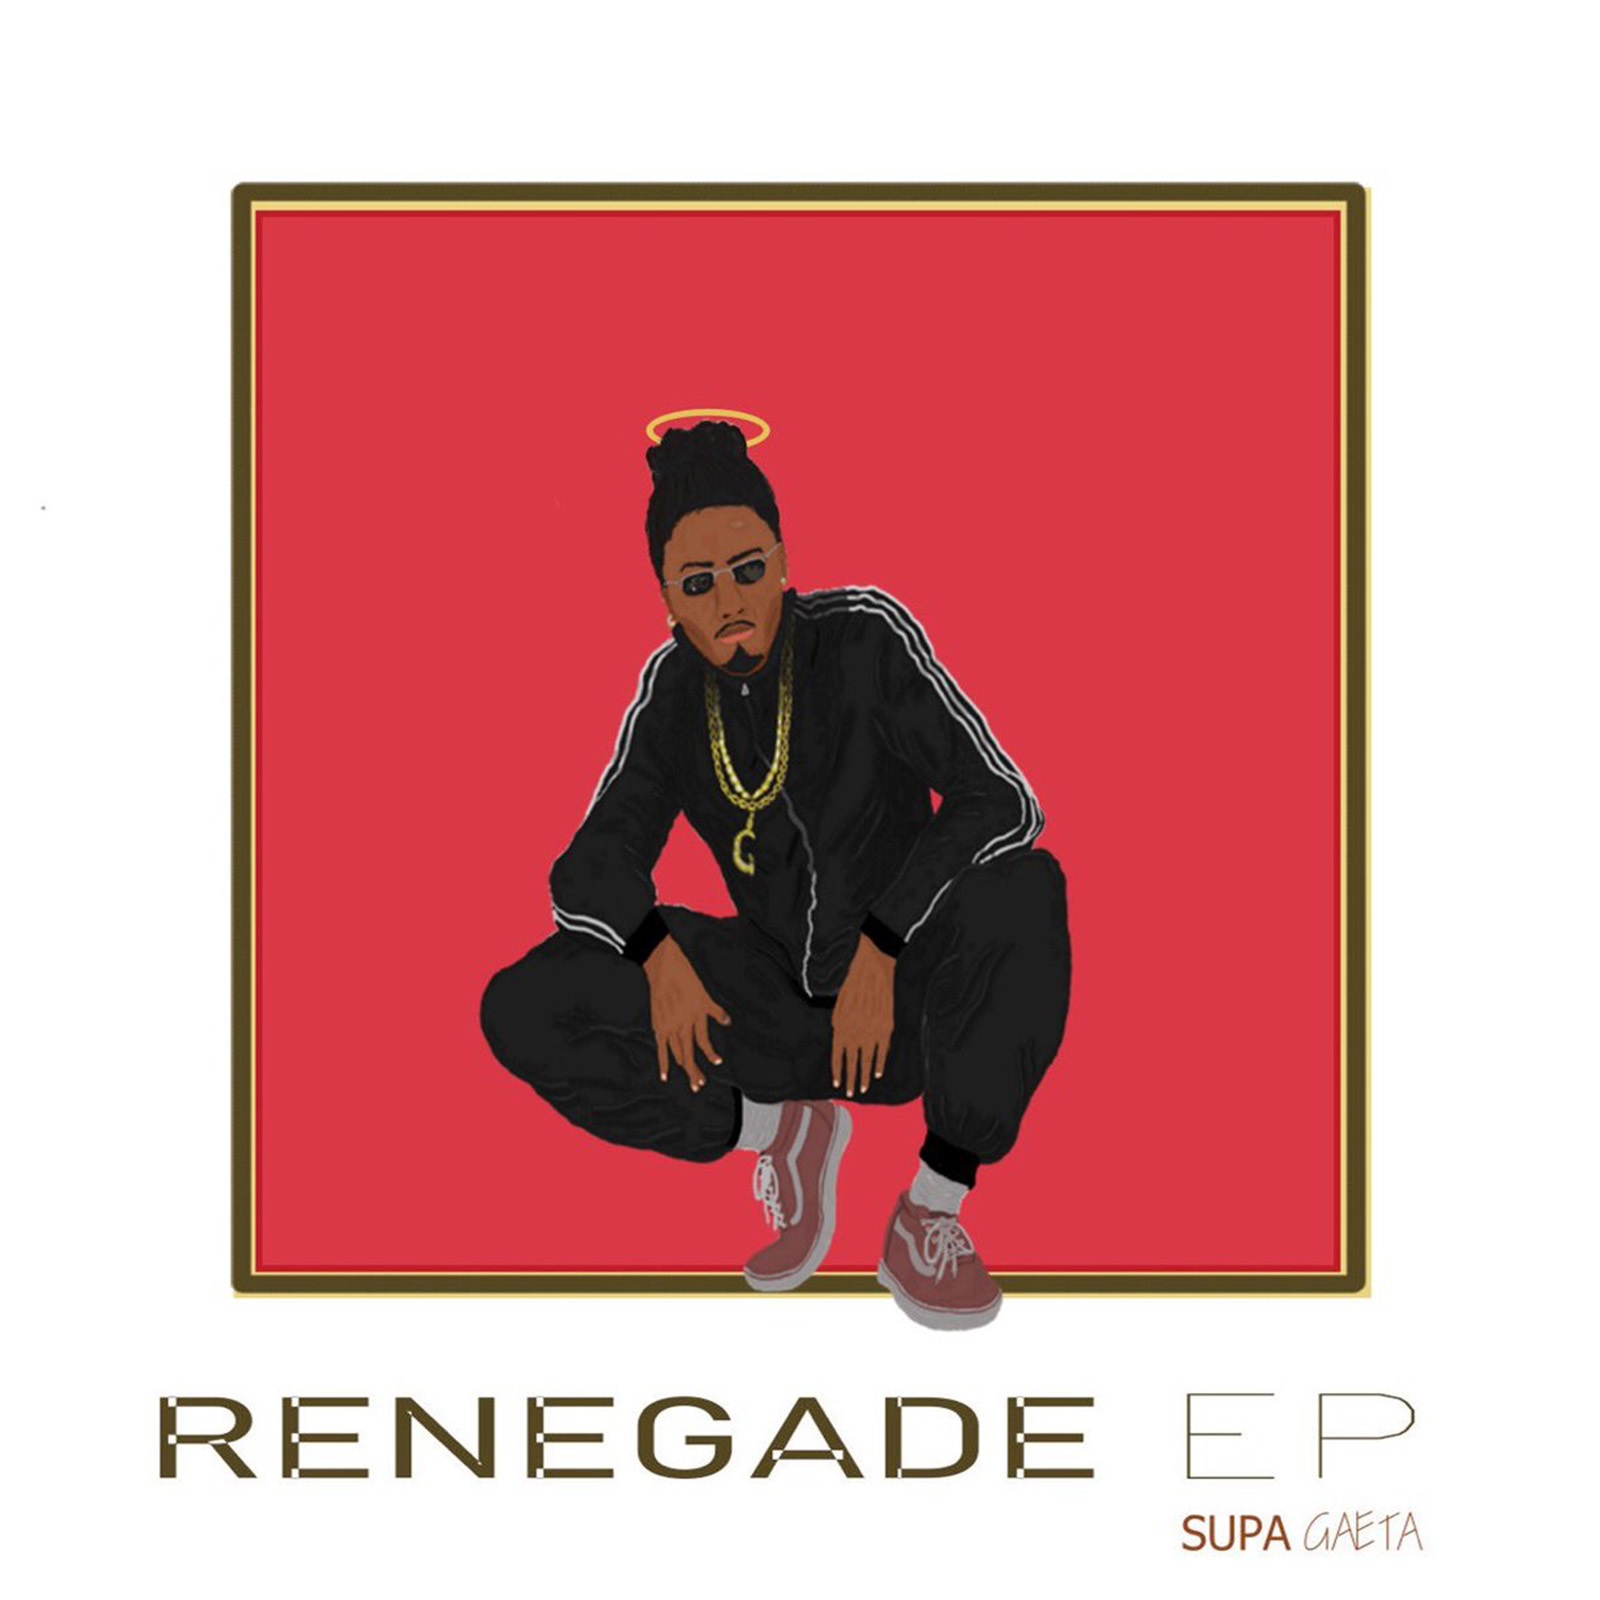 Renegade EP by SUPA GAETA